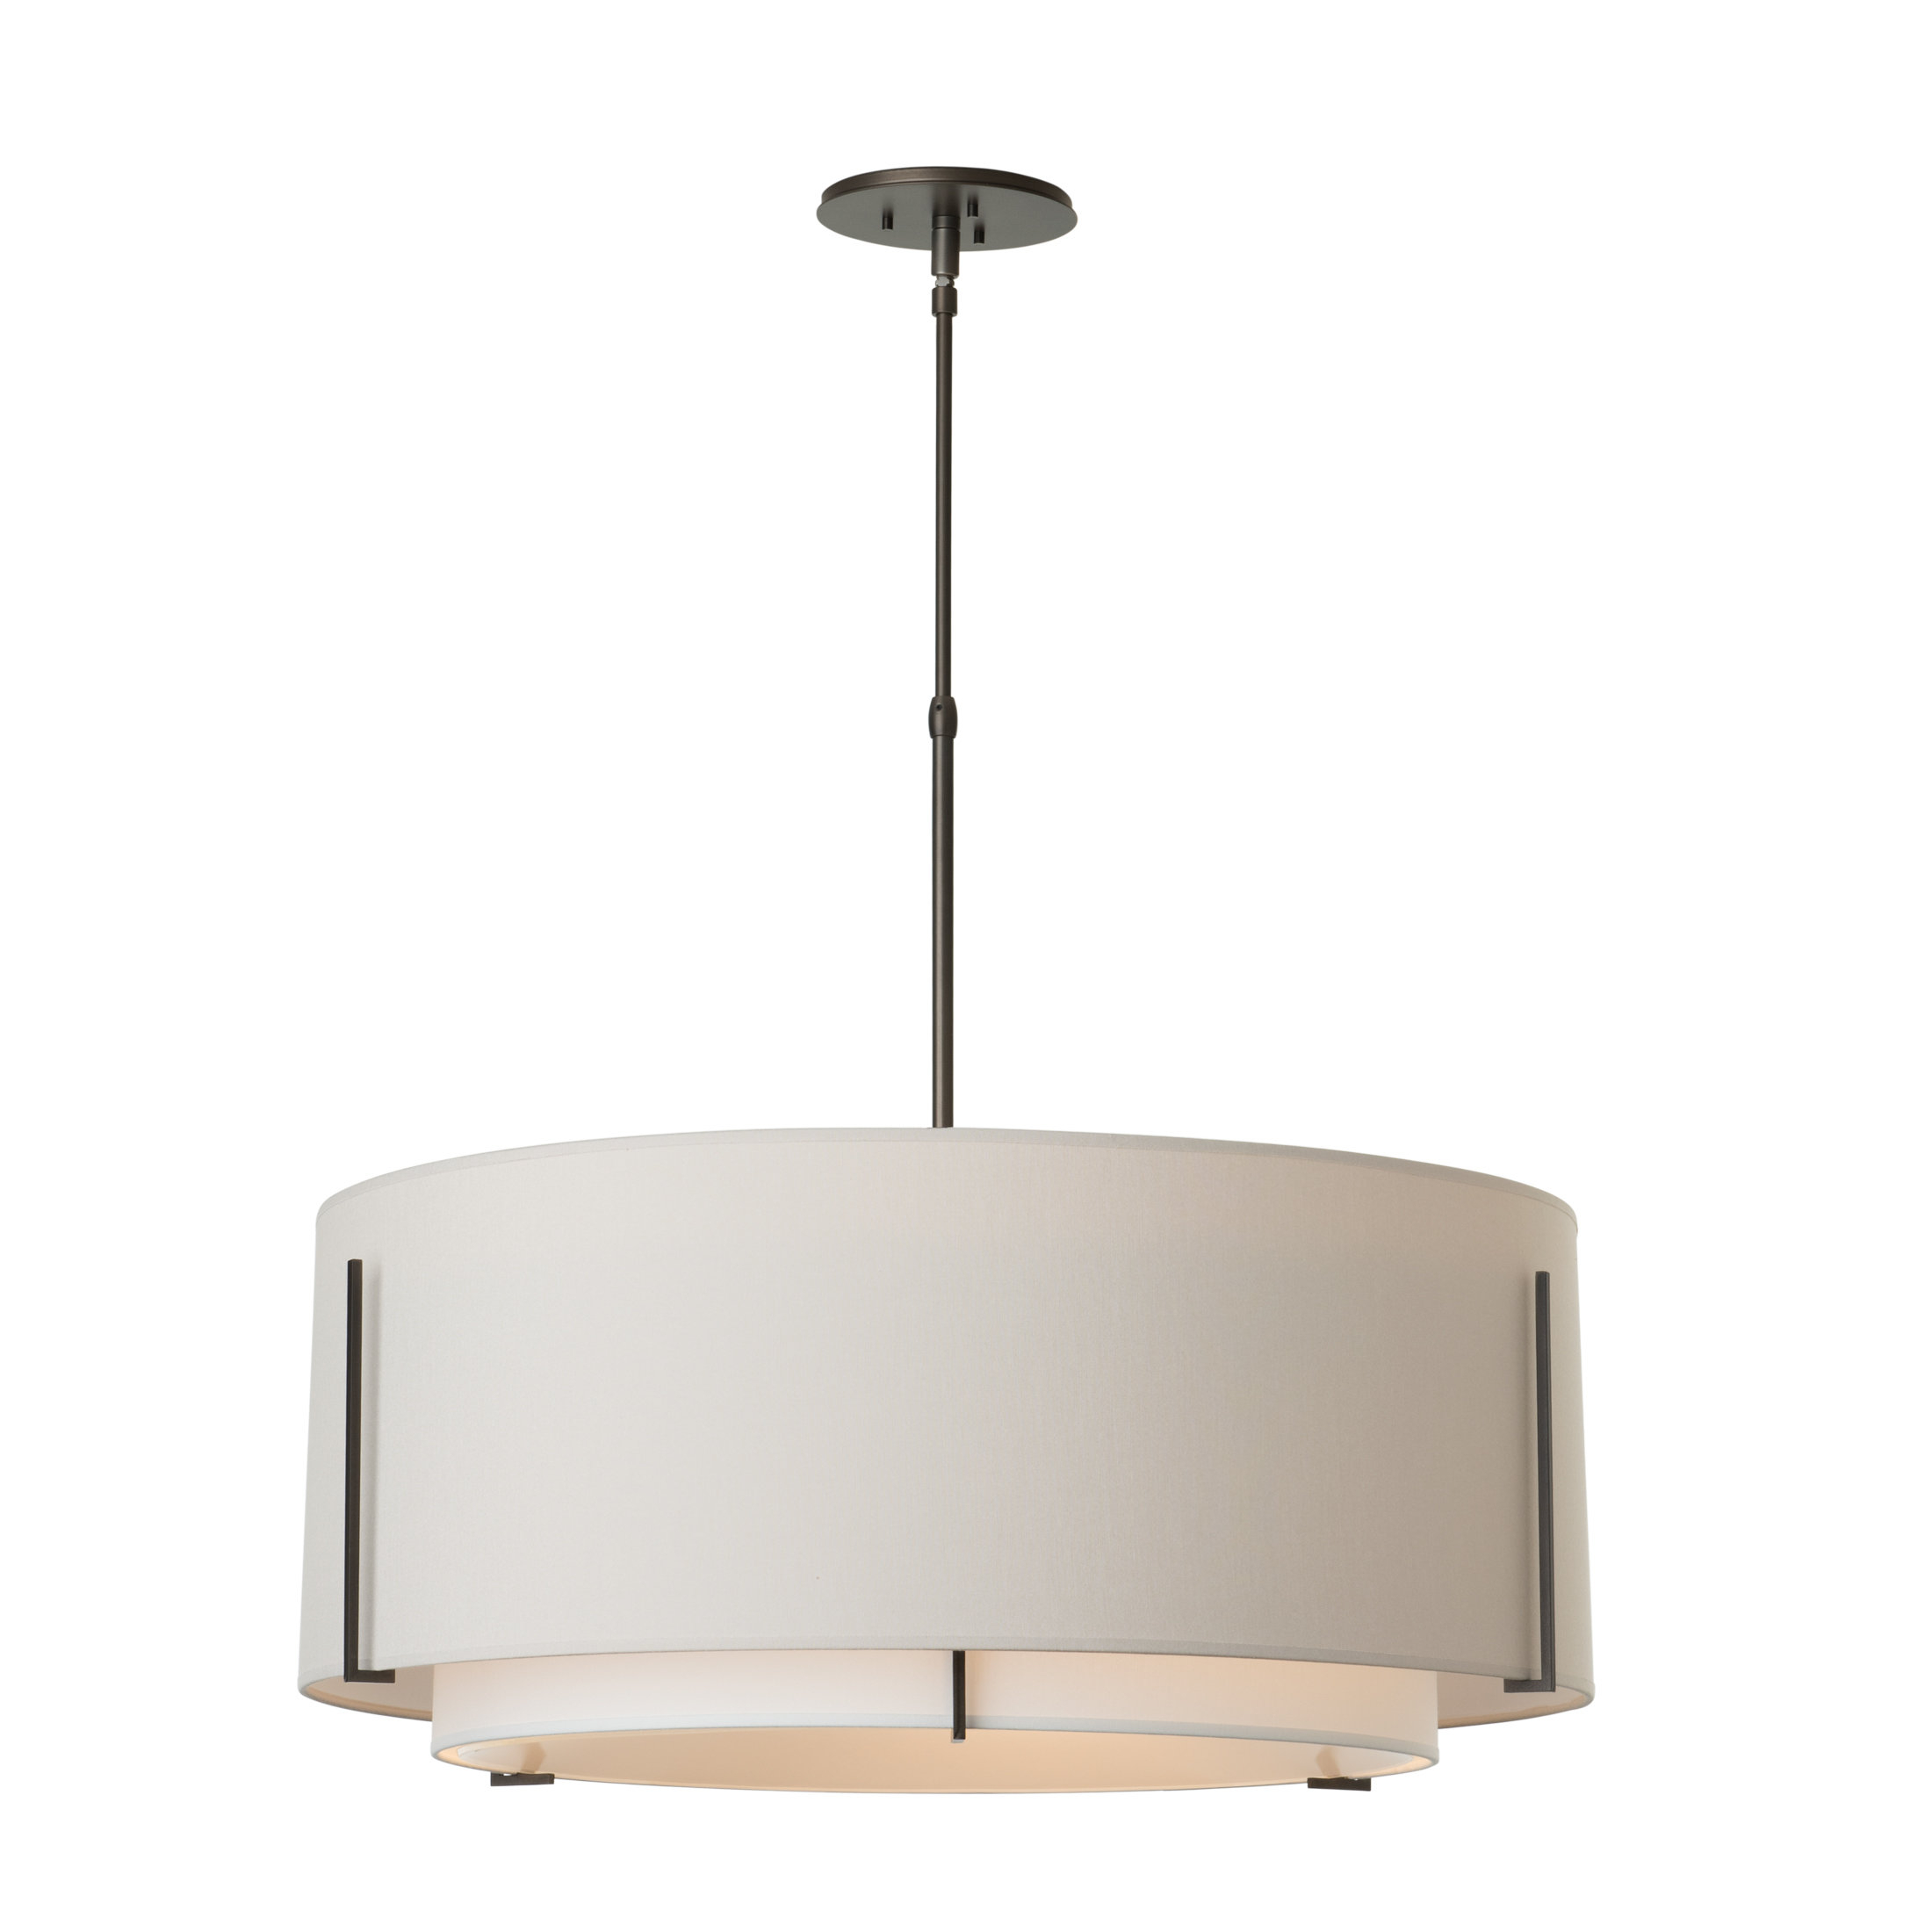 Most Recent Black Drum Pendant Lighting You'll Love In  (View 16 of 25)